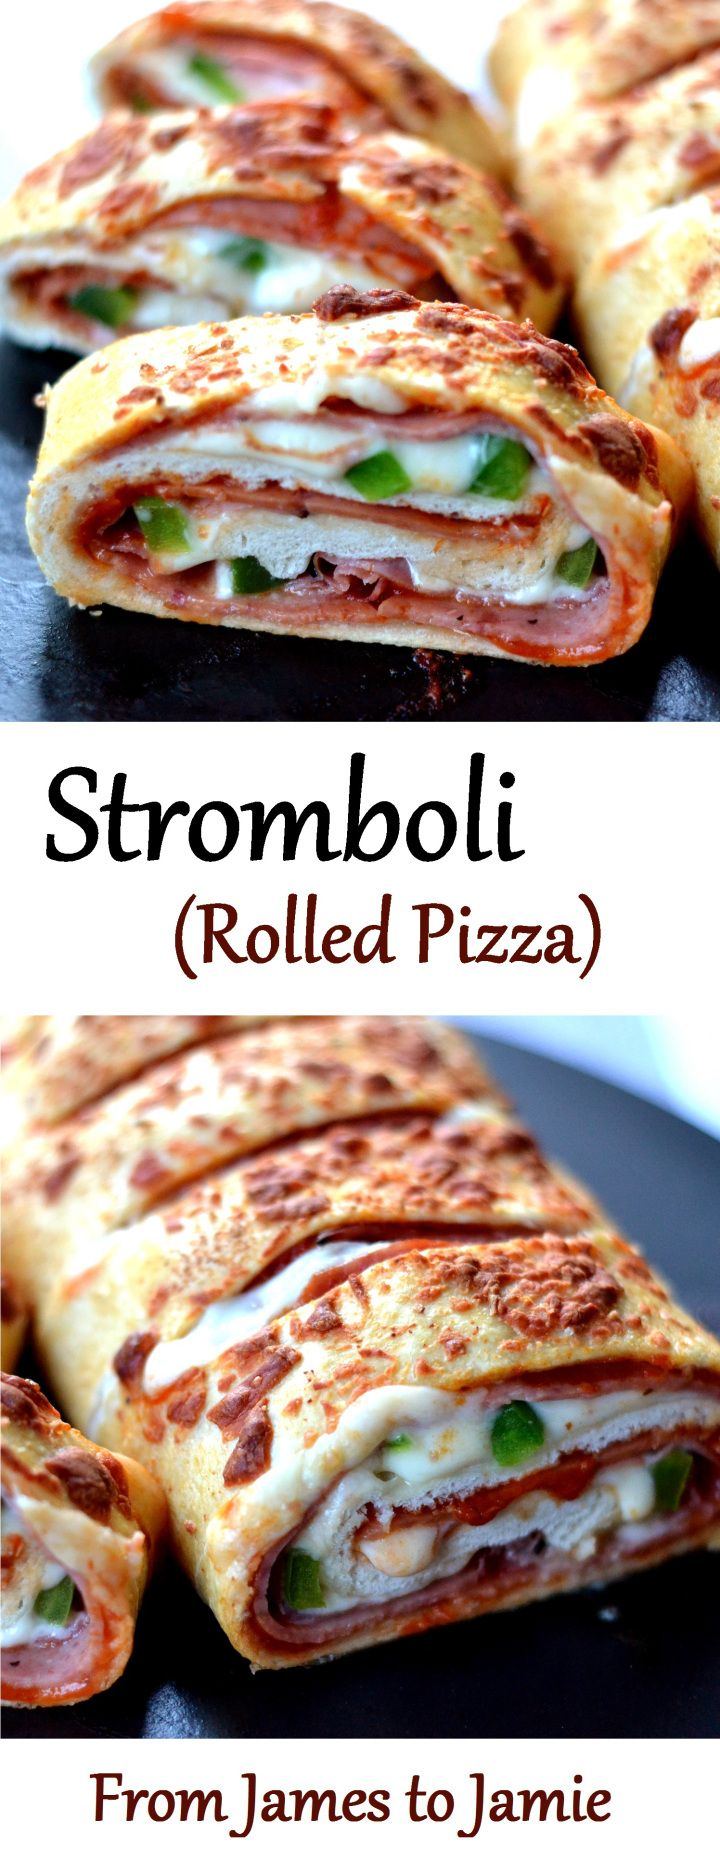 Stromboli is like a rolled pizza.  It is so versatile and can be made to everyone's liking.  Vegetarian or stuffed to the hilt, they're delicious.